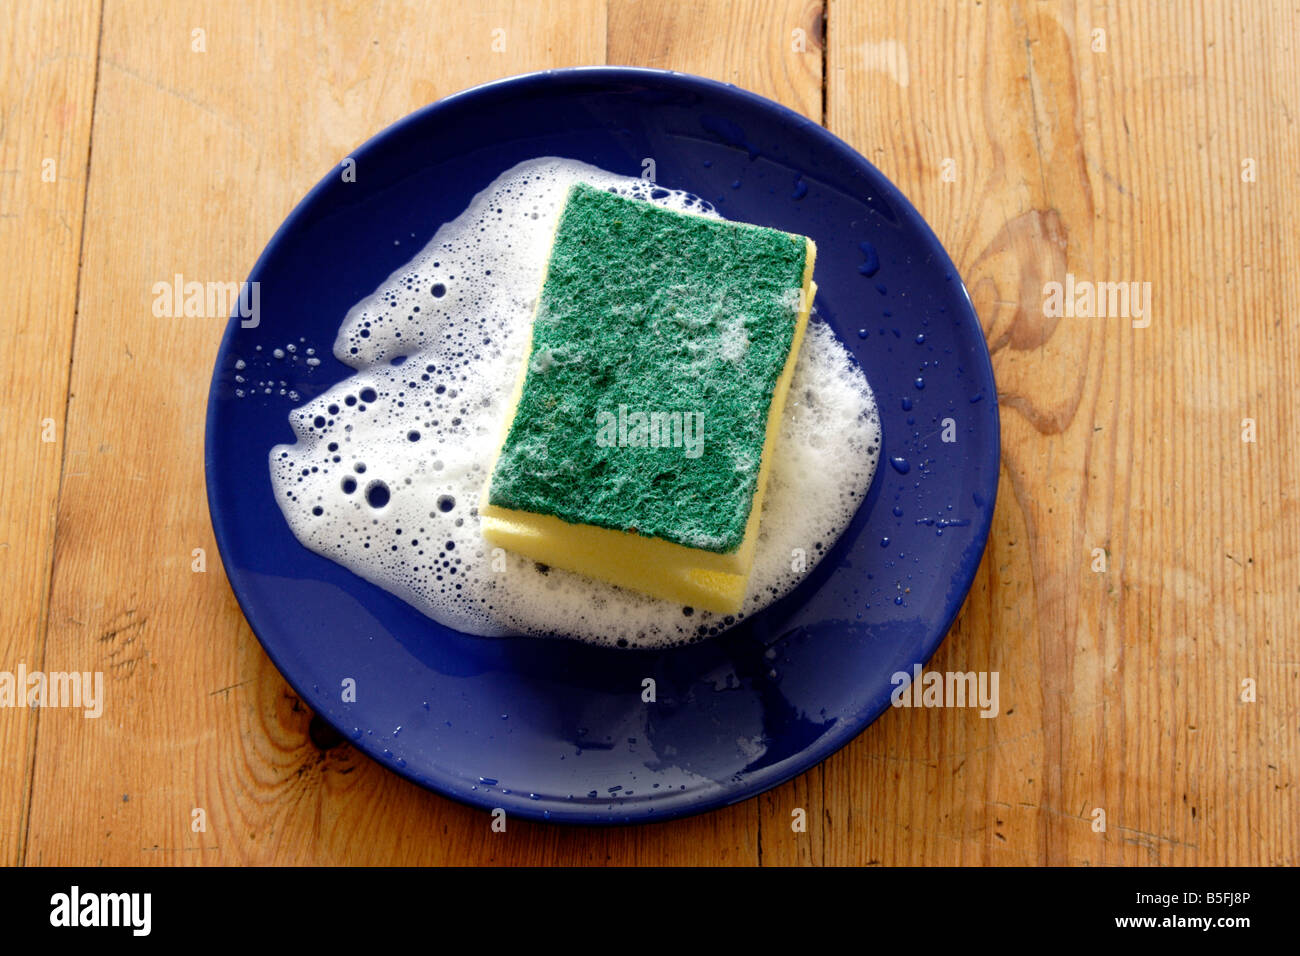 Soapy sponge cleaning plate close up Stock Photo: 20627286